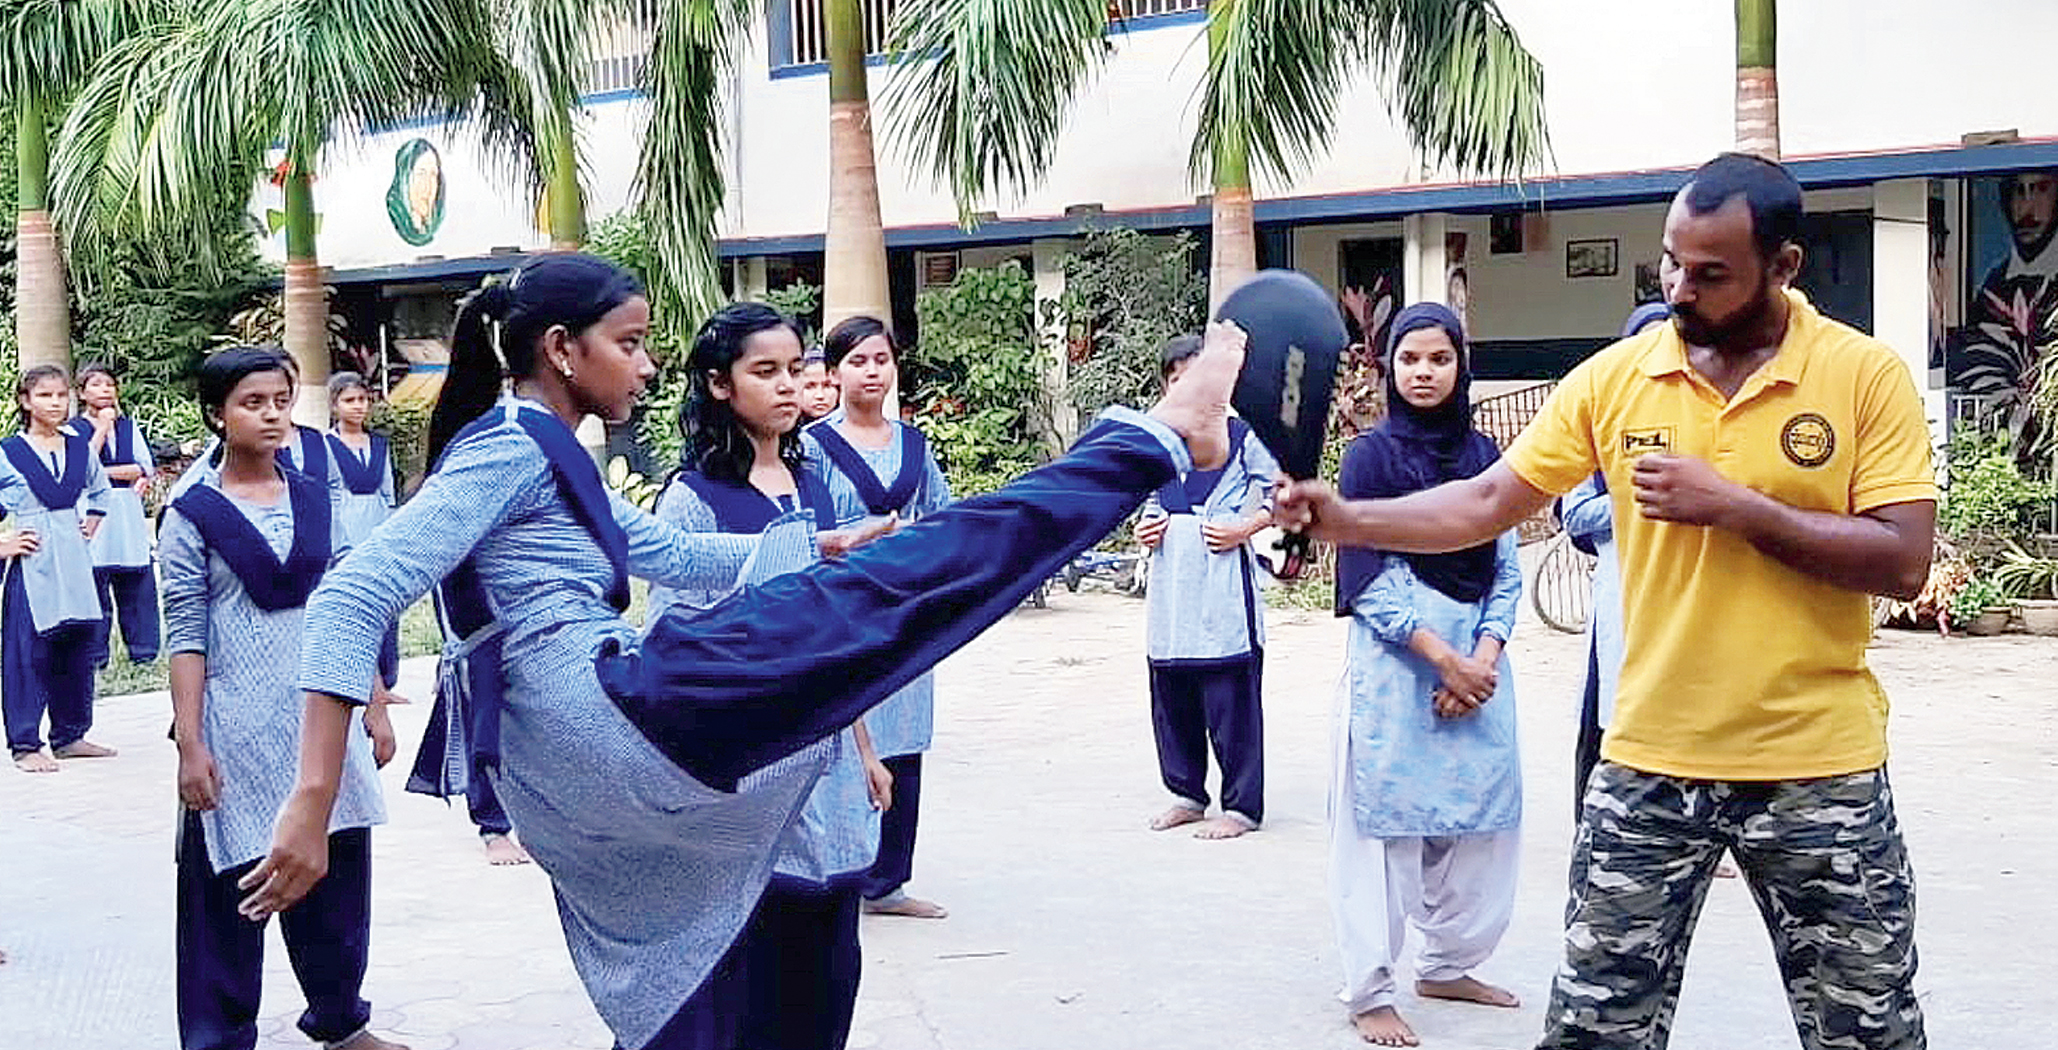 A self-defence class in progress at Laskarpur High School in Murshidabad